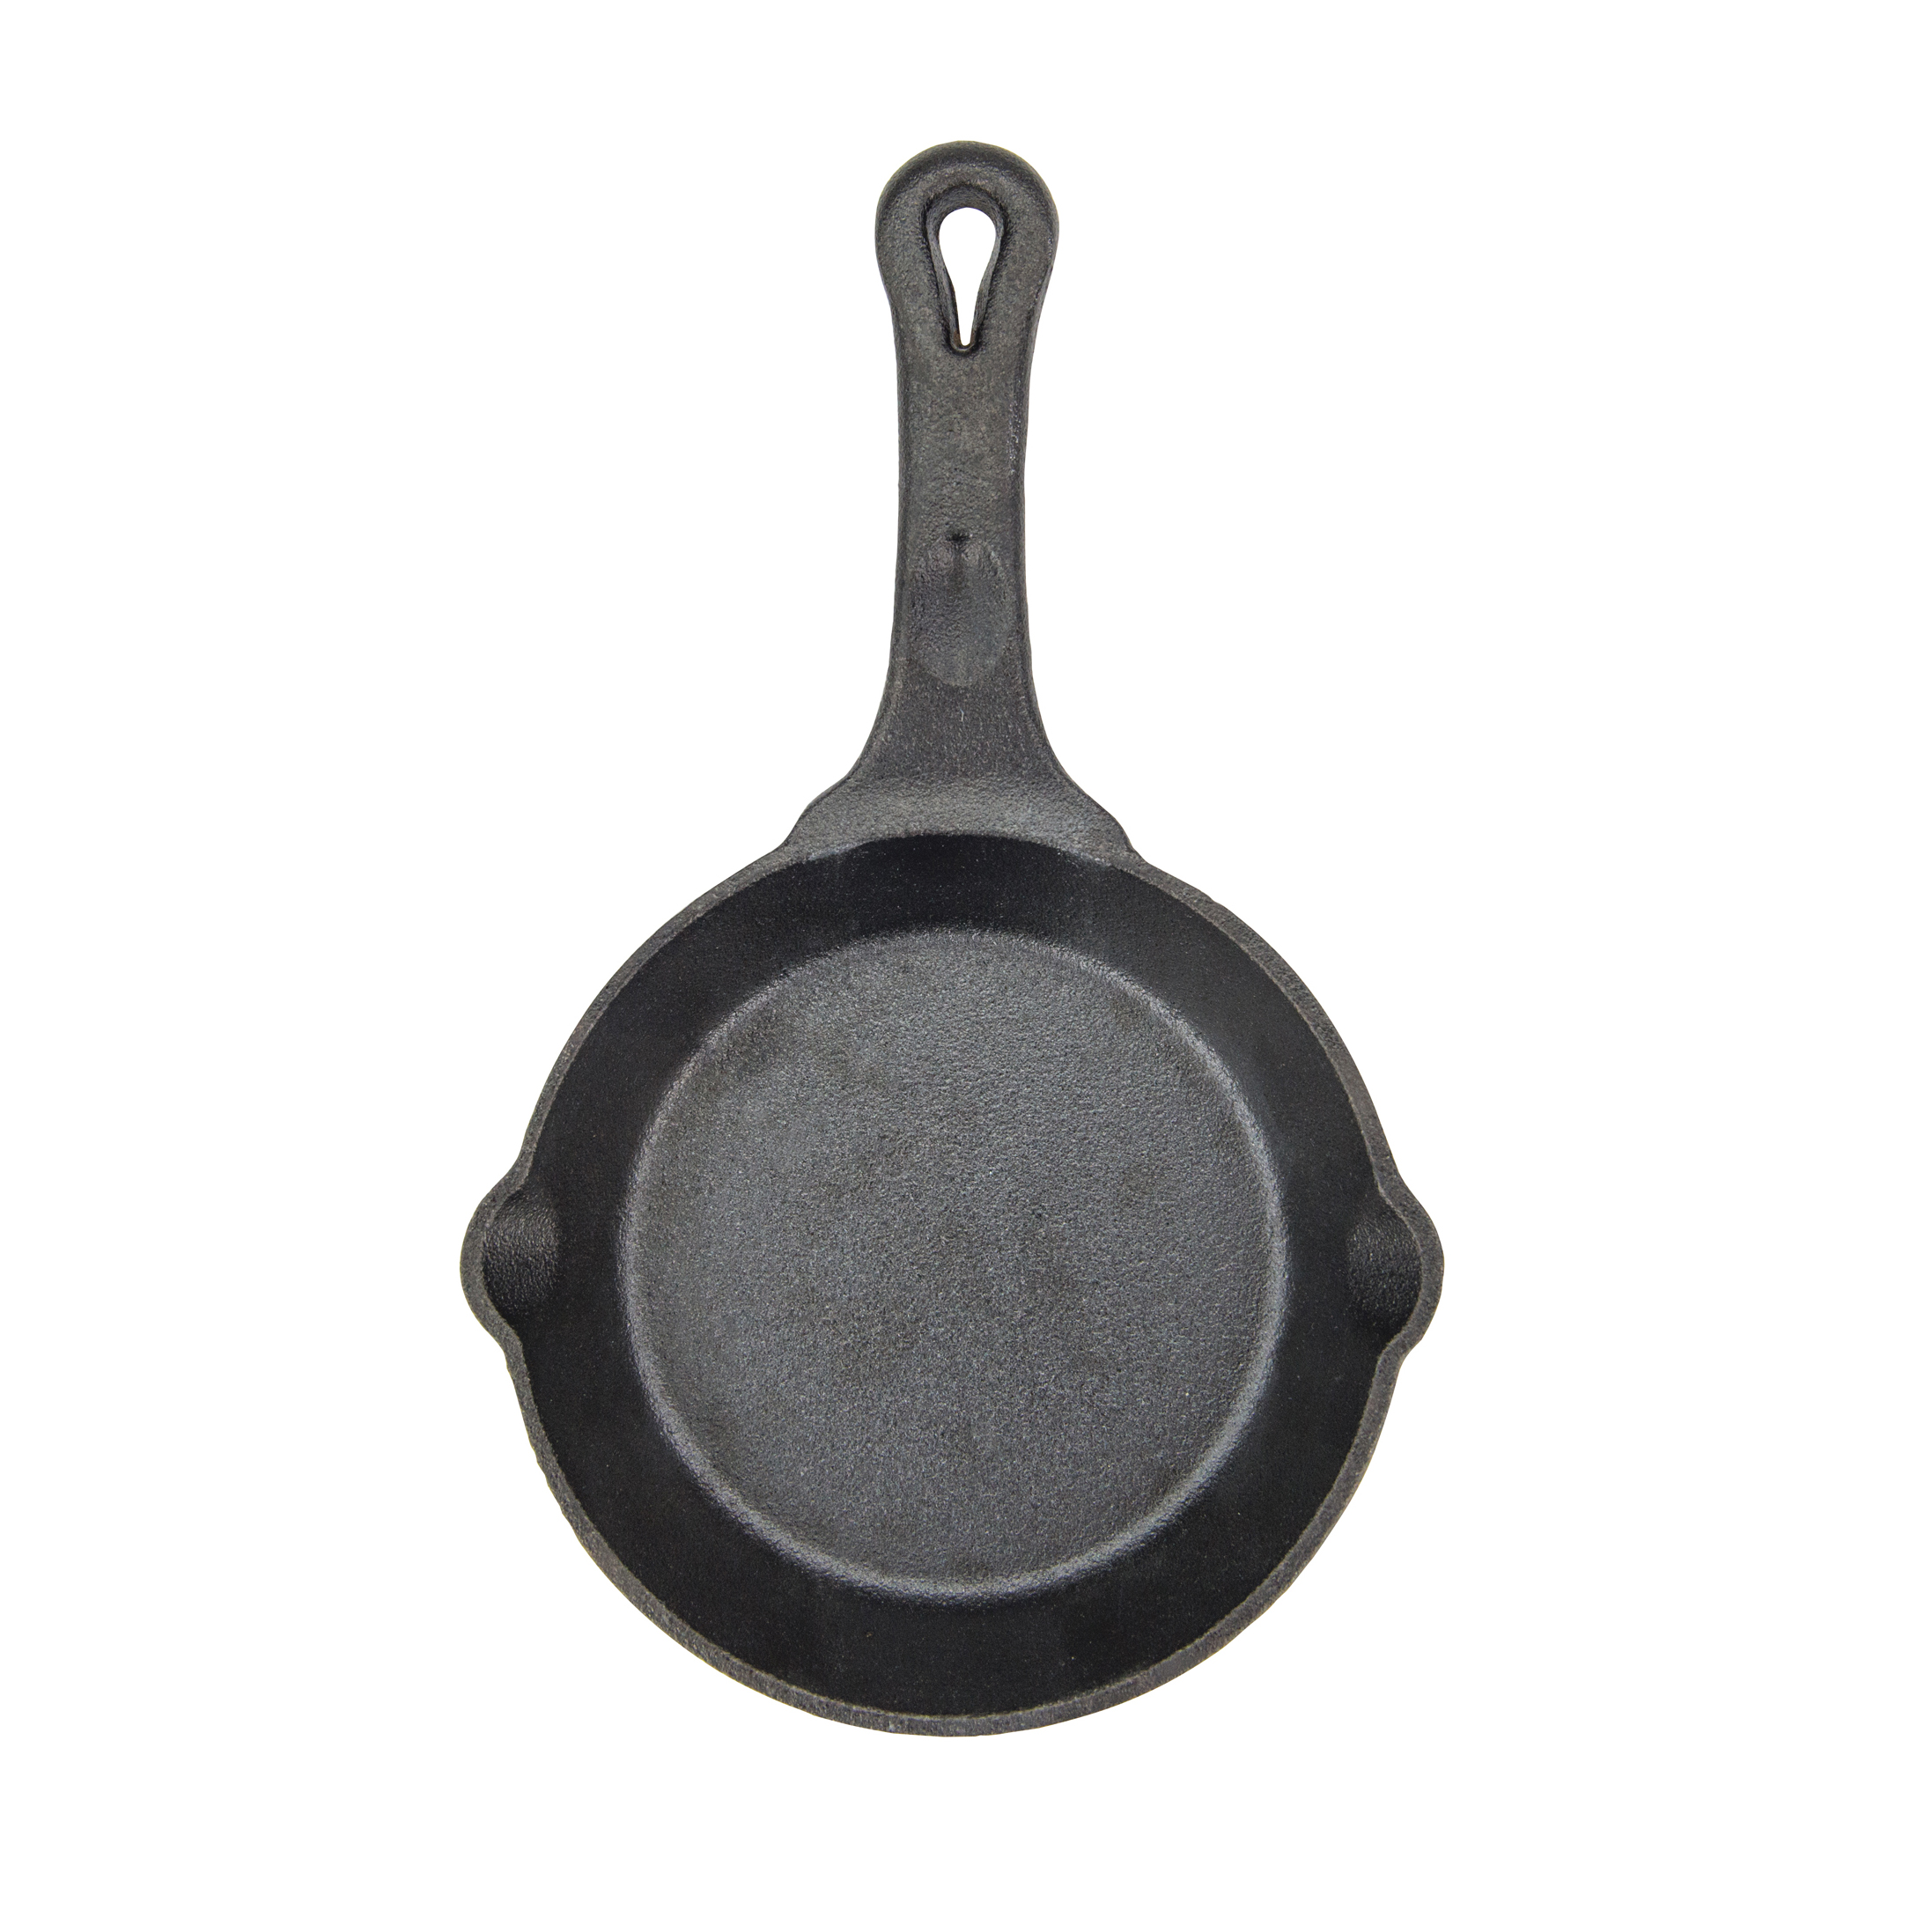 Winco CAST-6 cast iron fry pan